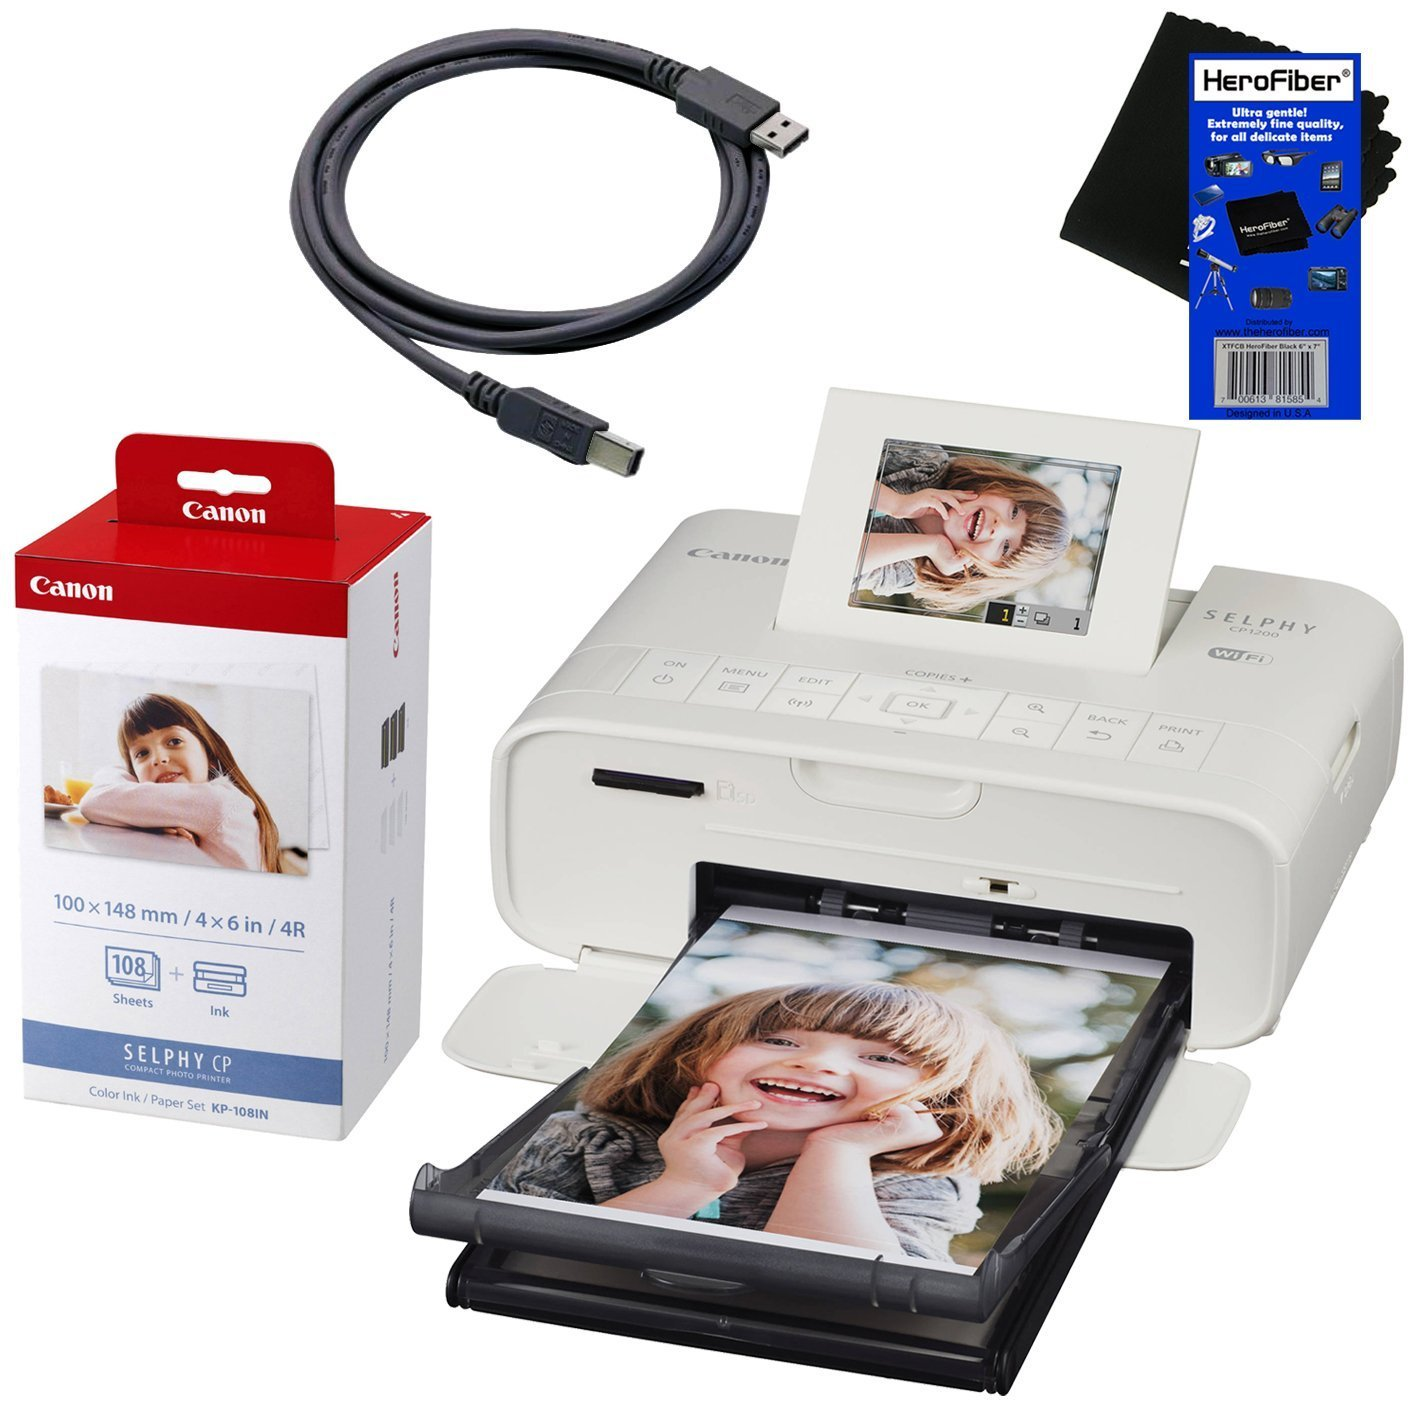 "Canon Selphy CP1200 Wireless Color Photo Printer (White) + Canon KP-108IN Color Ink Paper Set (Produces up to 108 of 4 x 6"" prints) + USB Printer Cable + HeroFiber Ultra Gentle Cleaning Cloth"